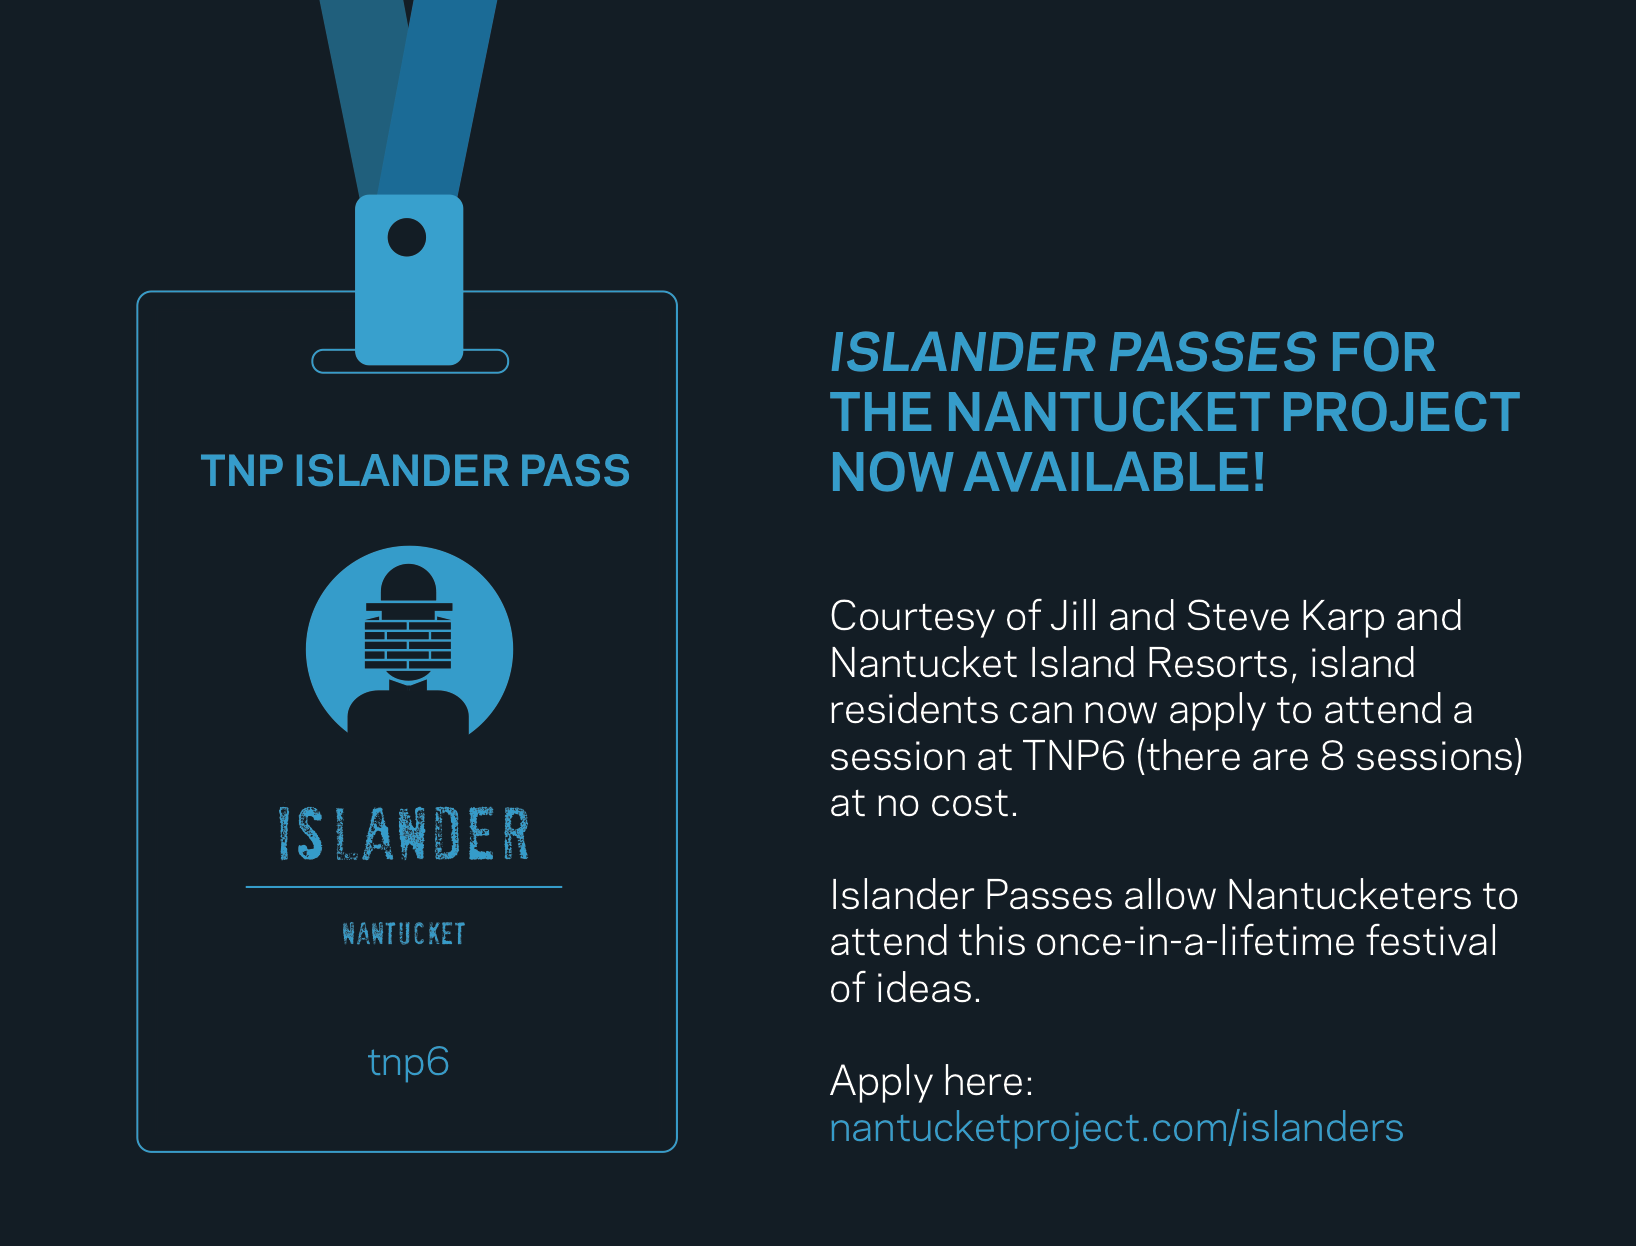 nantucket project islander pass